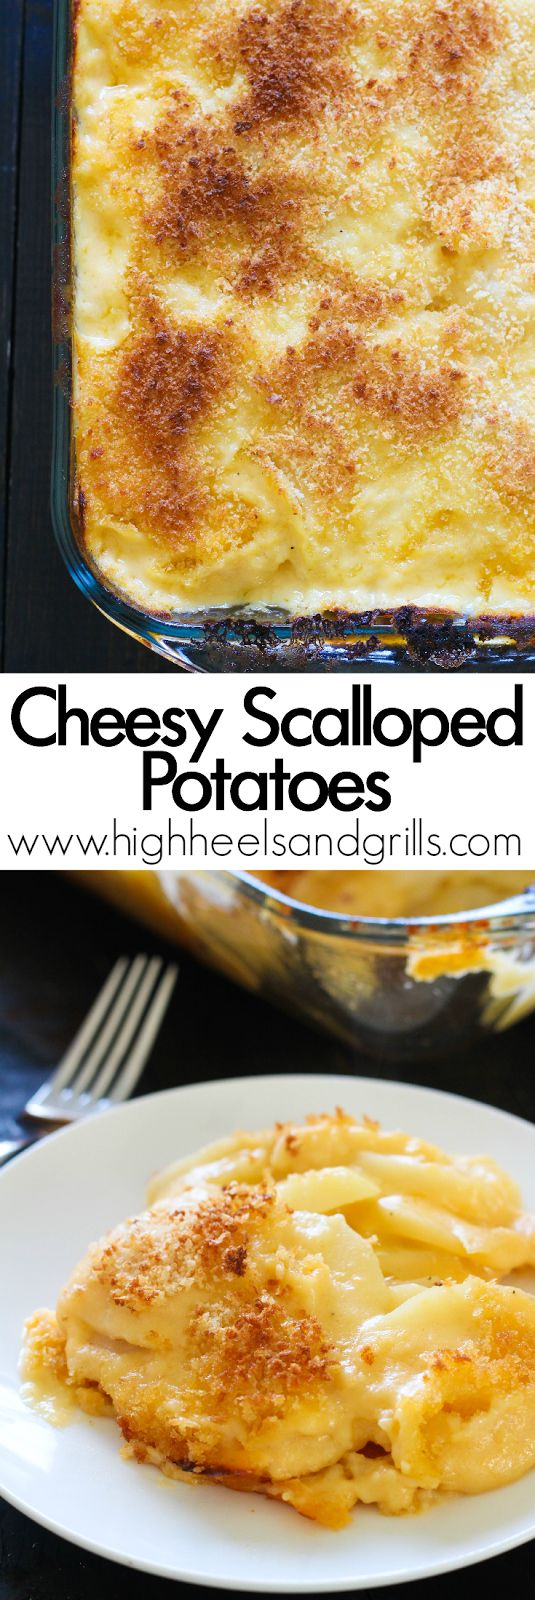 Cheesy Scalloped Potatoes - cheesy, easy to make, and the Panko bread crumbs on top give it the perfect hint of crunchiness! https://www.highheelsandgrills.com/cheesy-scalloped-potatoes/